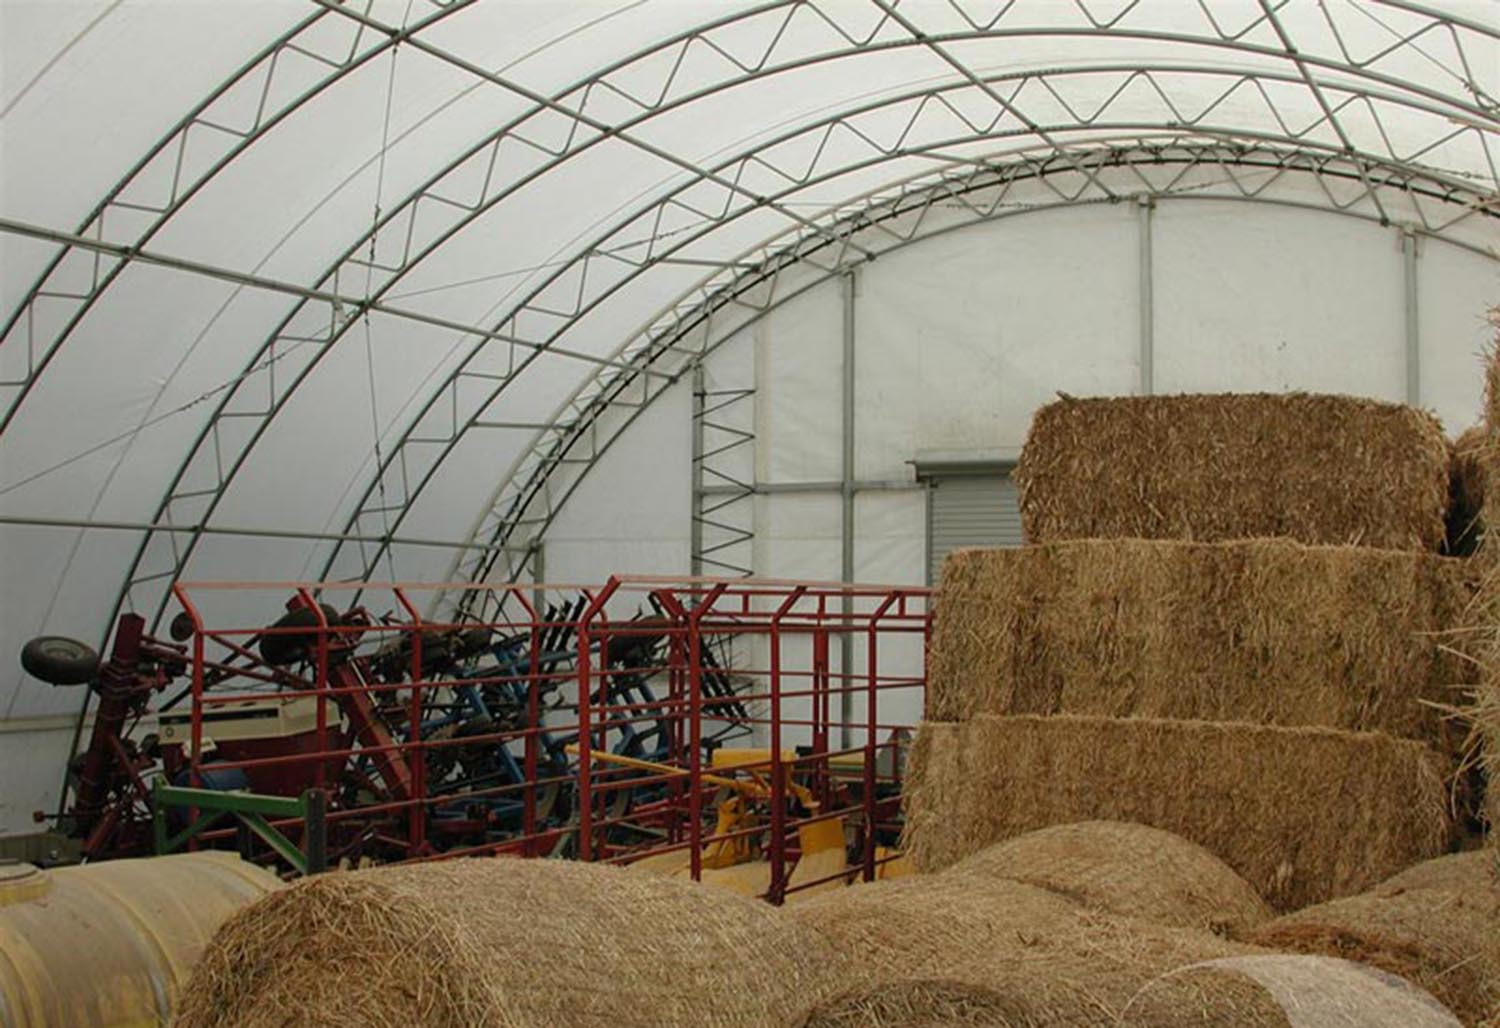 Fabric Shelters For Aquaculture : Product spotlight fabric covered buildings farmers hot line